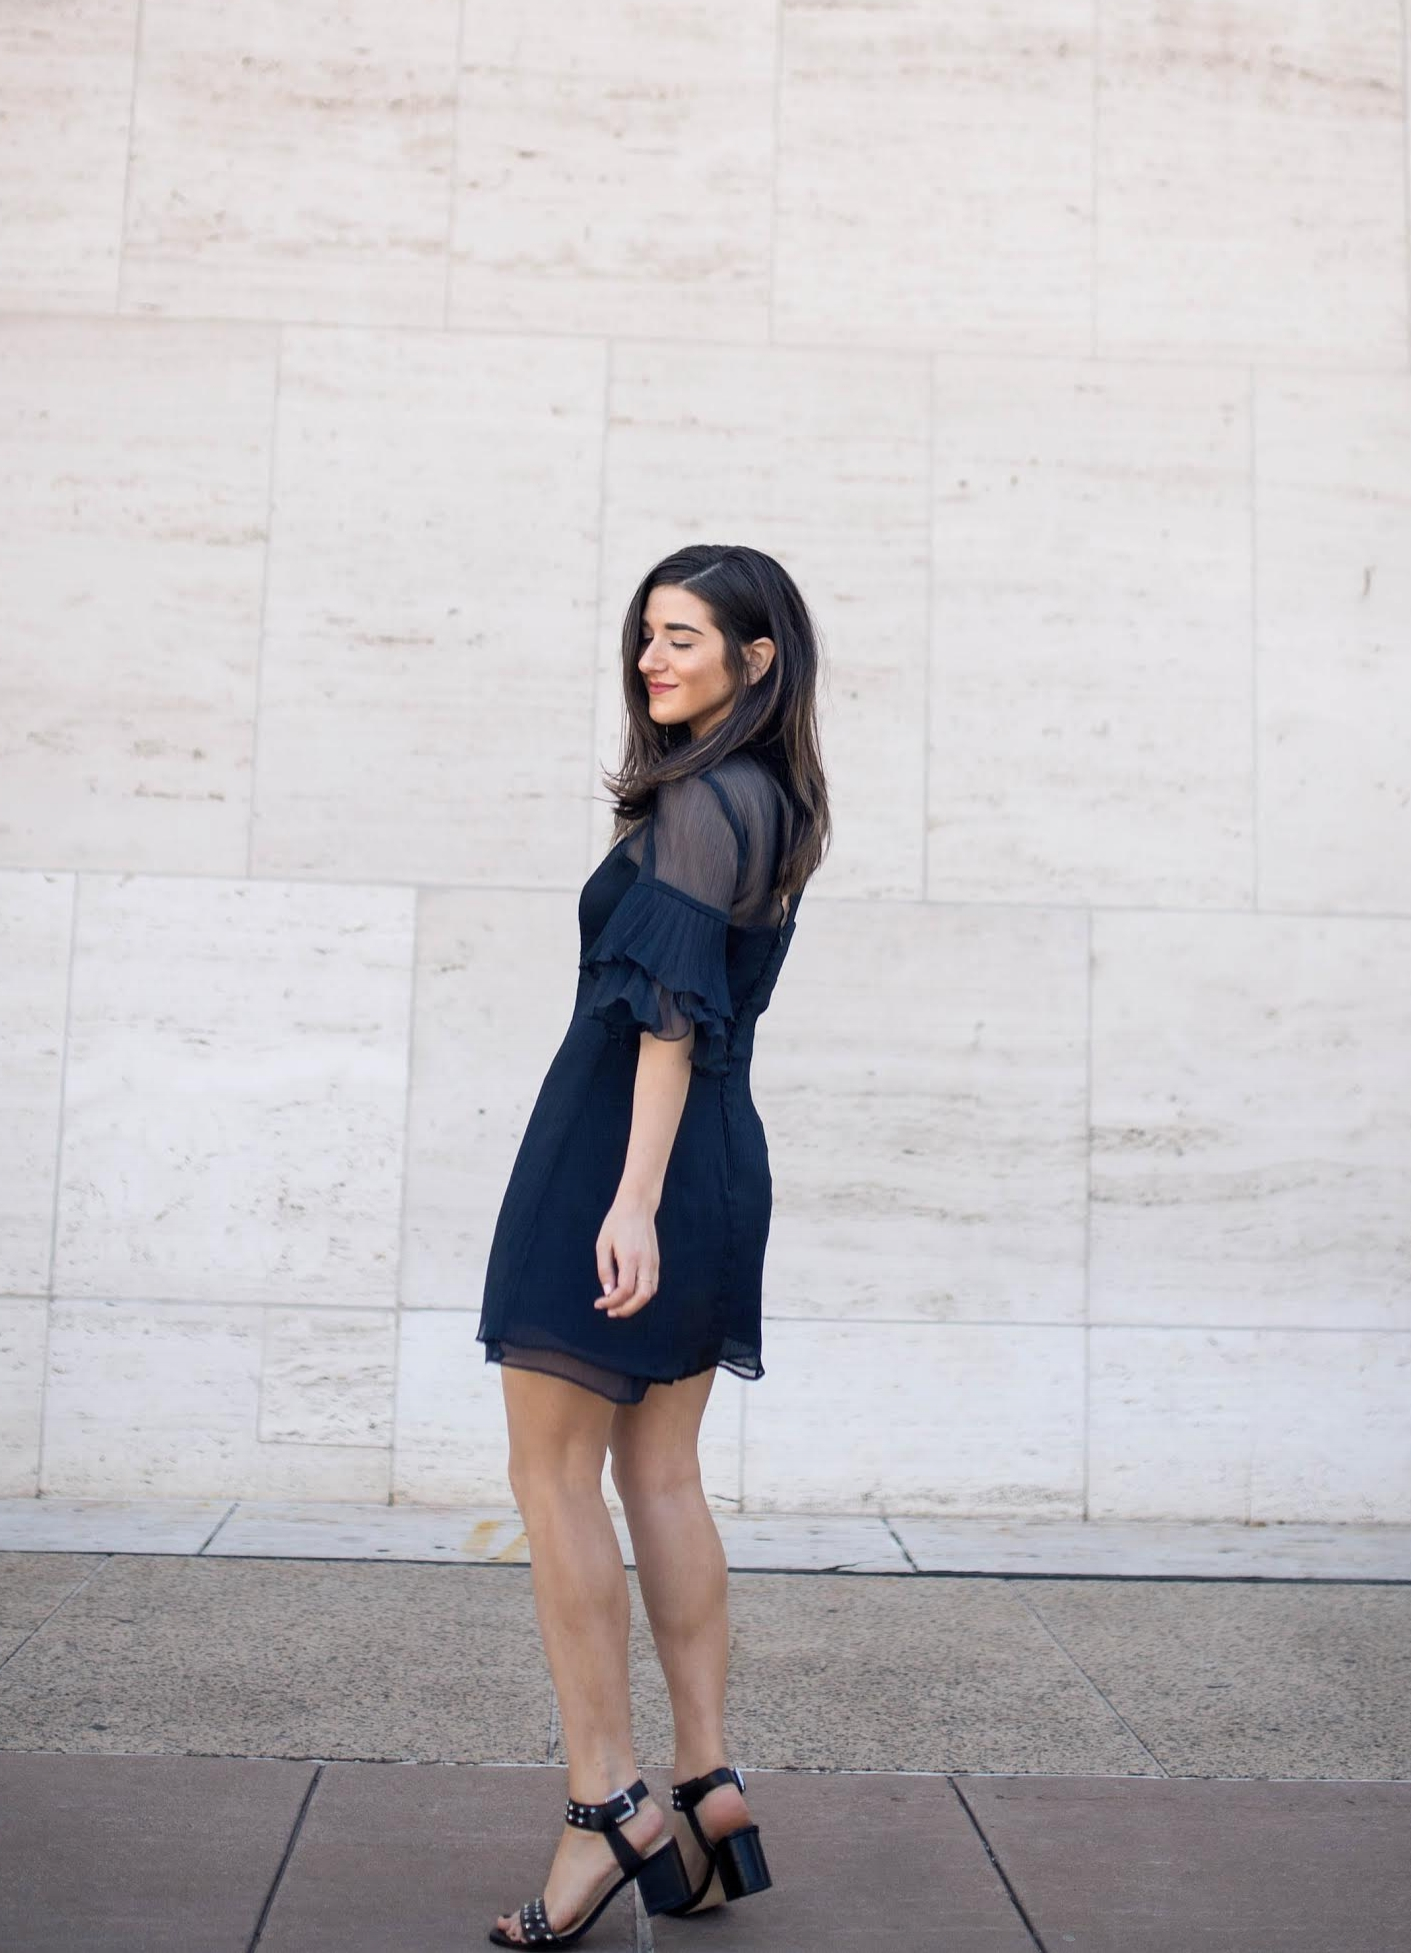 Lulus Ruffle Sleeve Dress The Best And Worst Fads of 2017 Esther Santer Fashion Blog NYC Street Style Blogger Outfit OOTD Trendy Pretty Feminine Navy Elegant Fancy Summer Look Sheer Black Studded Sandals Straight Hair Beauty Photoshoot Women Girl Shop.jpg